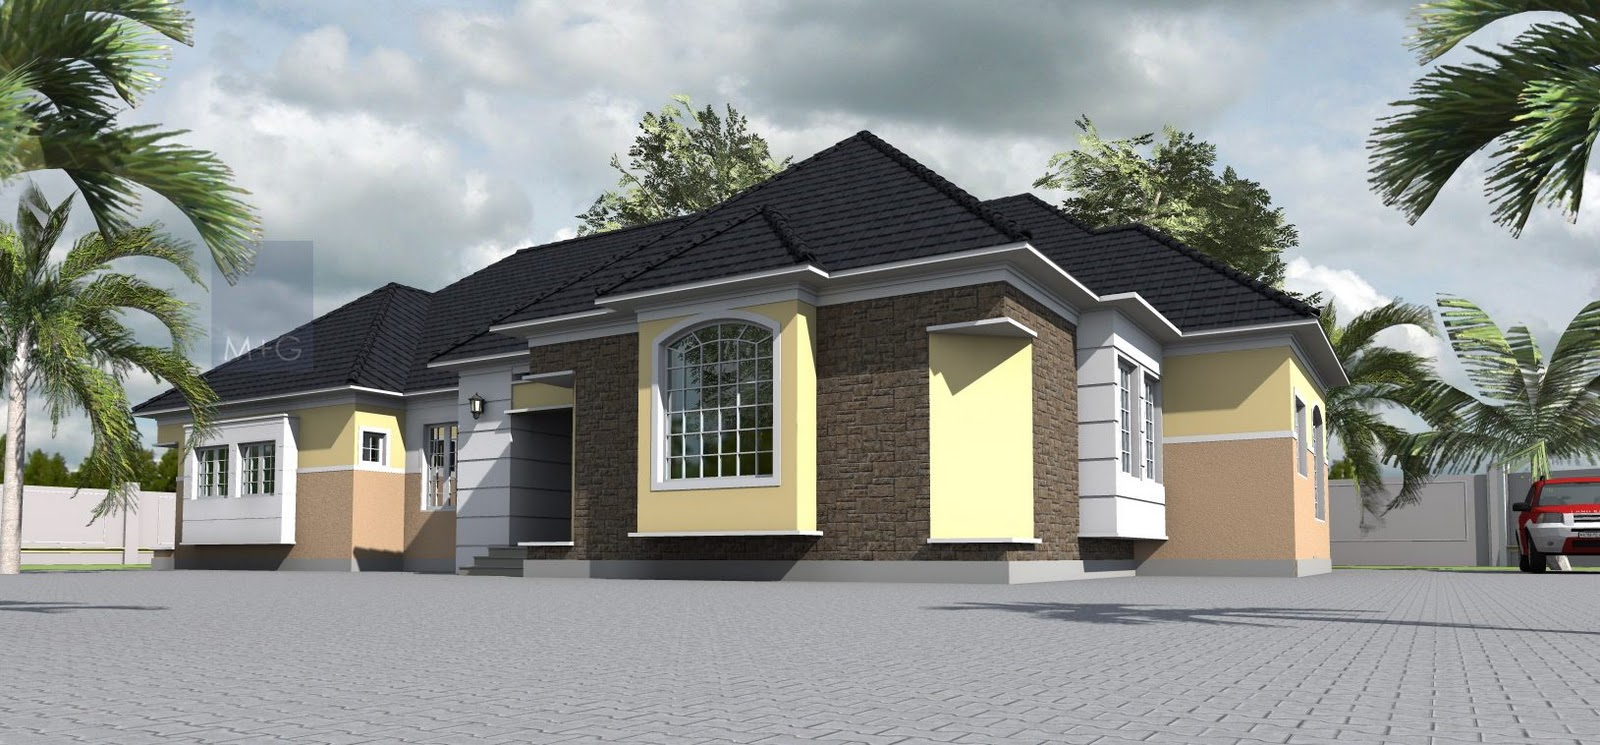 Contemporary 4 bedroom bungalow complete with all rooms en suite